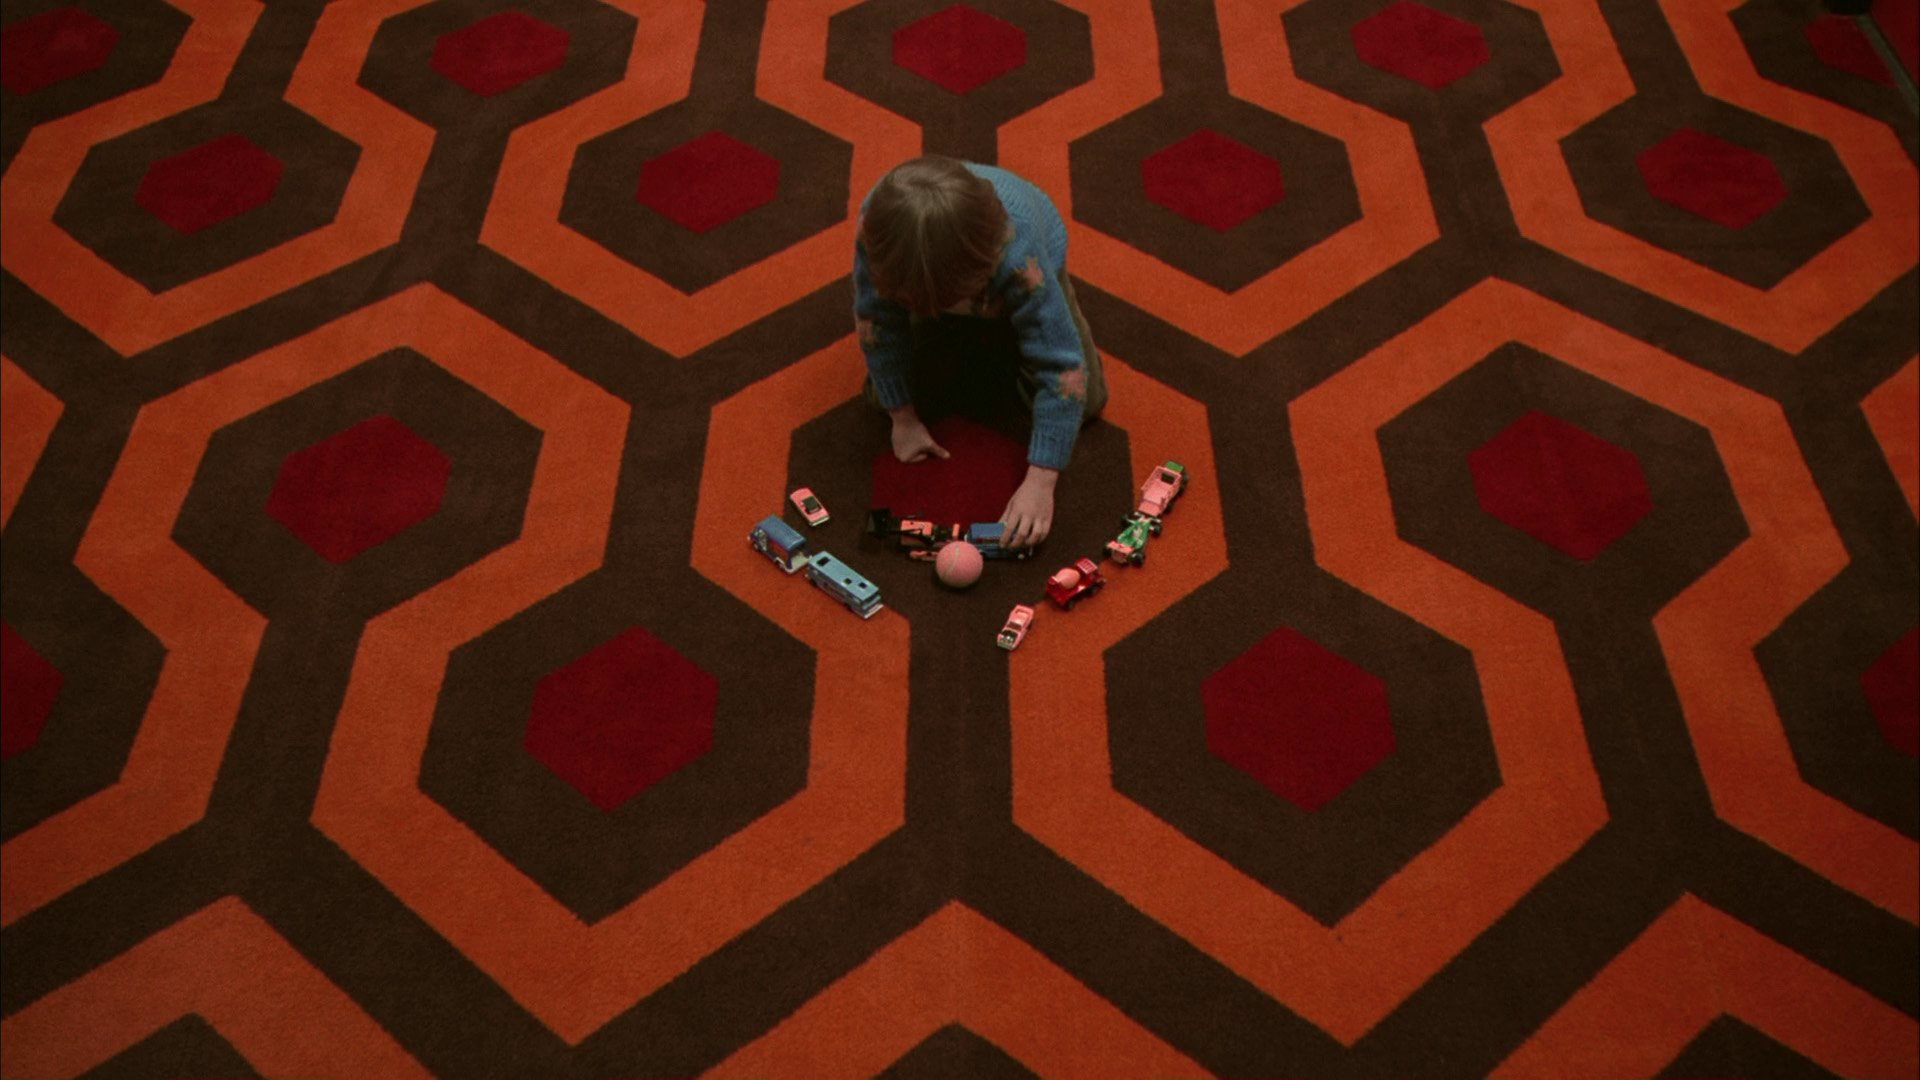 Checkmate The story behind Kubricks carpet in The Shining 1920x1080